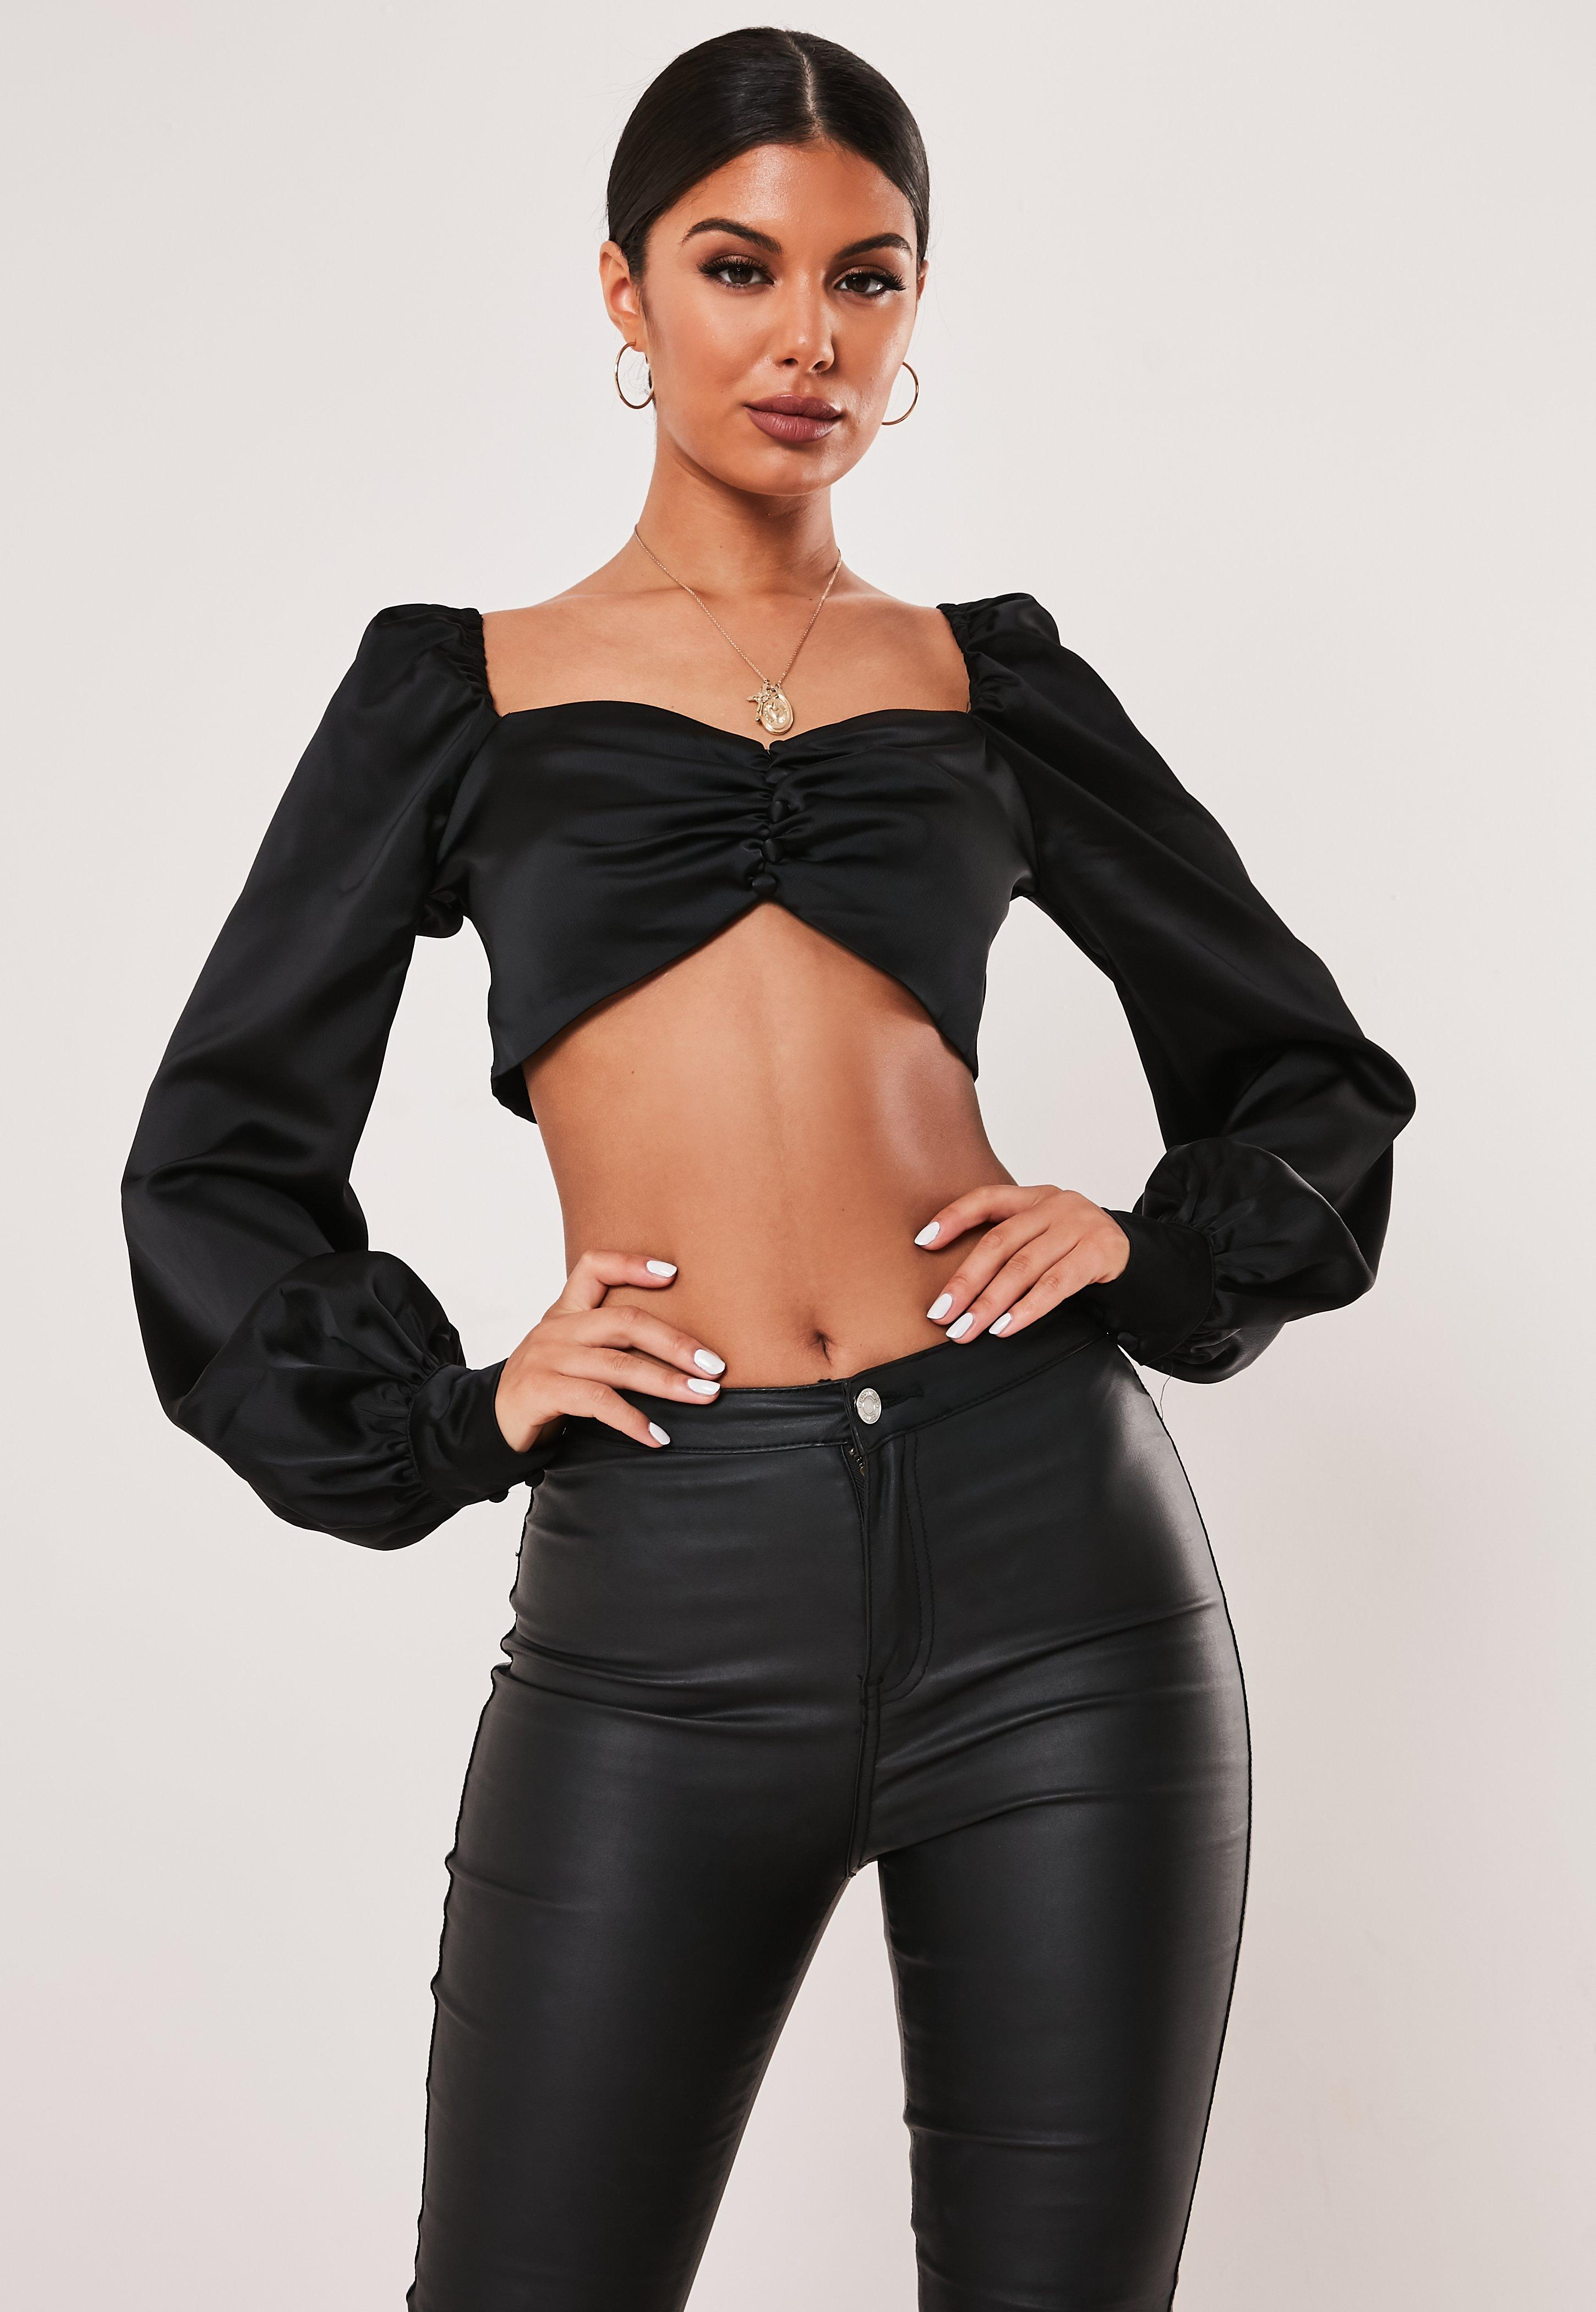 aeeb48b994a004 Plunge Tops   Low Cut & V Neck Tops - Missguided